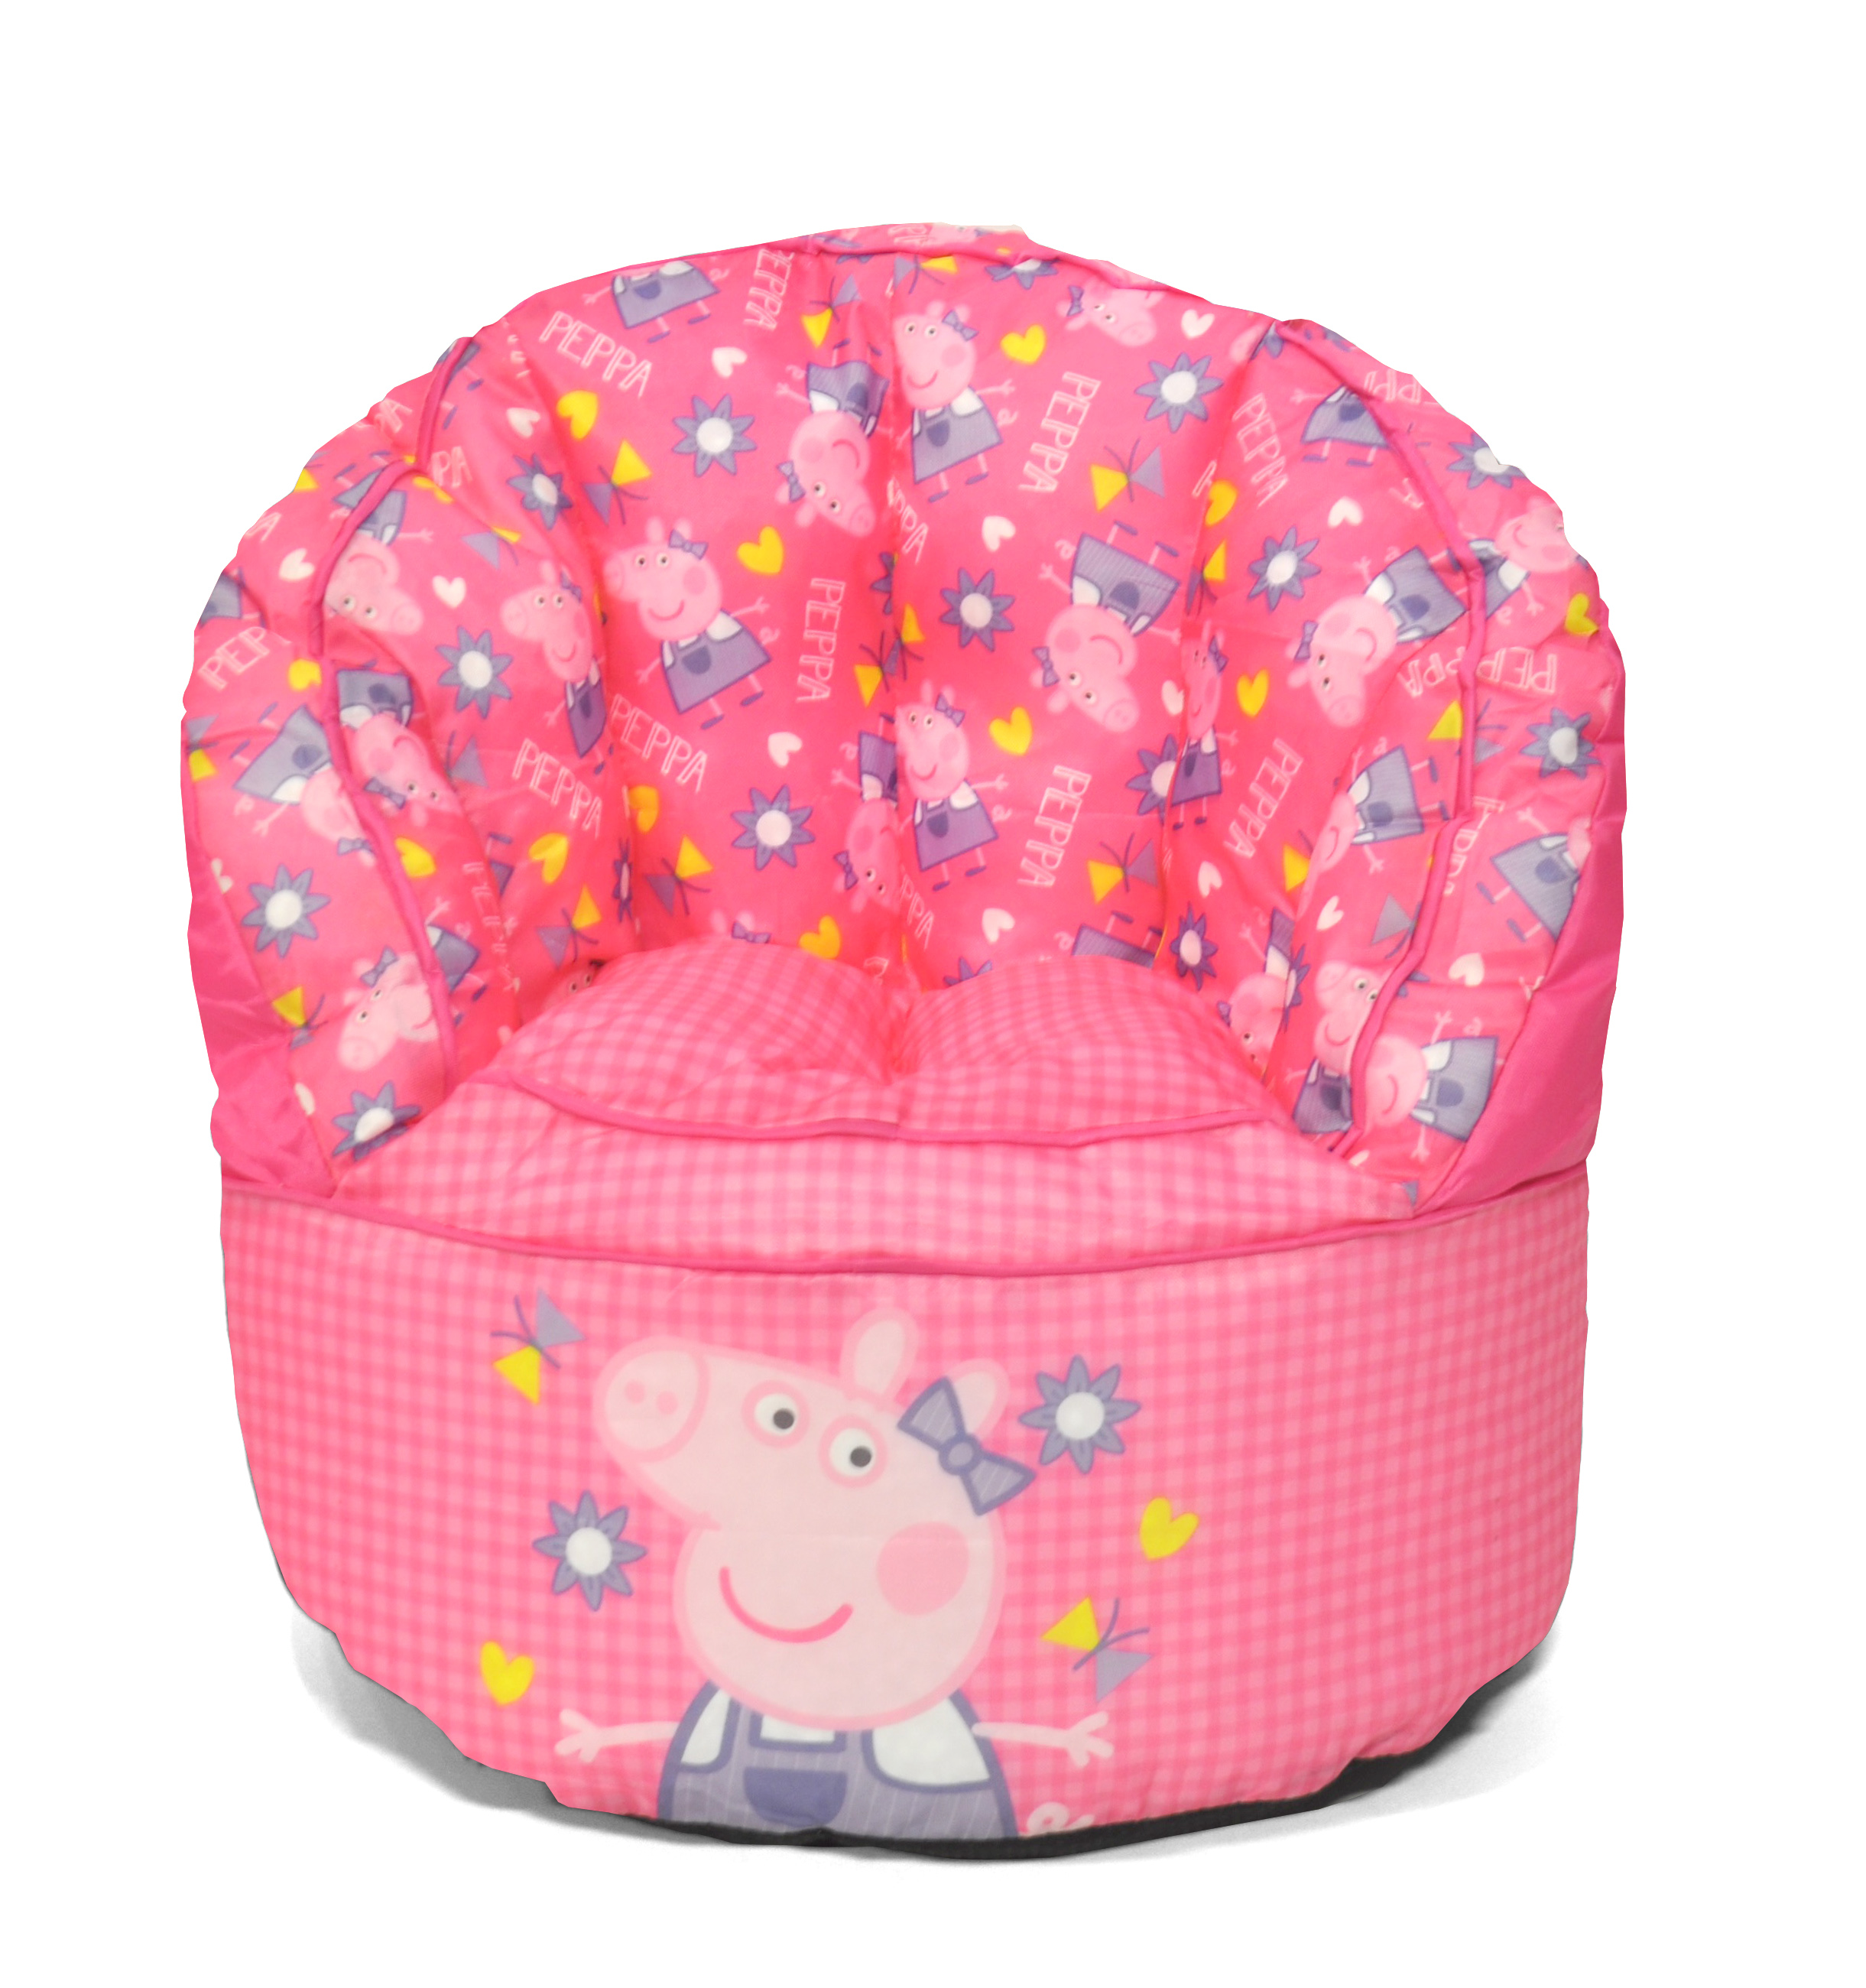 Peppa Pig Kids Bean Bag Chair